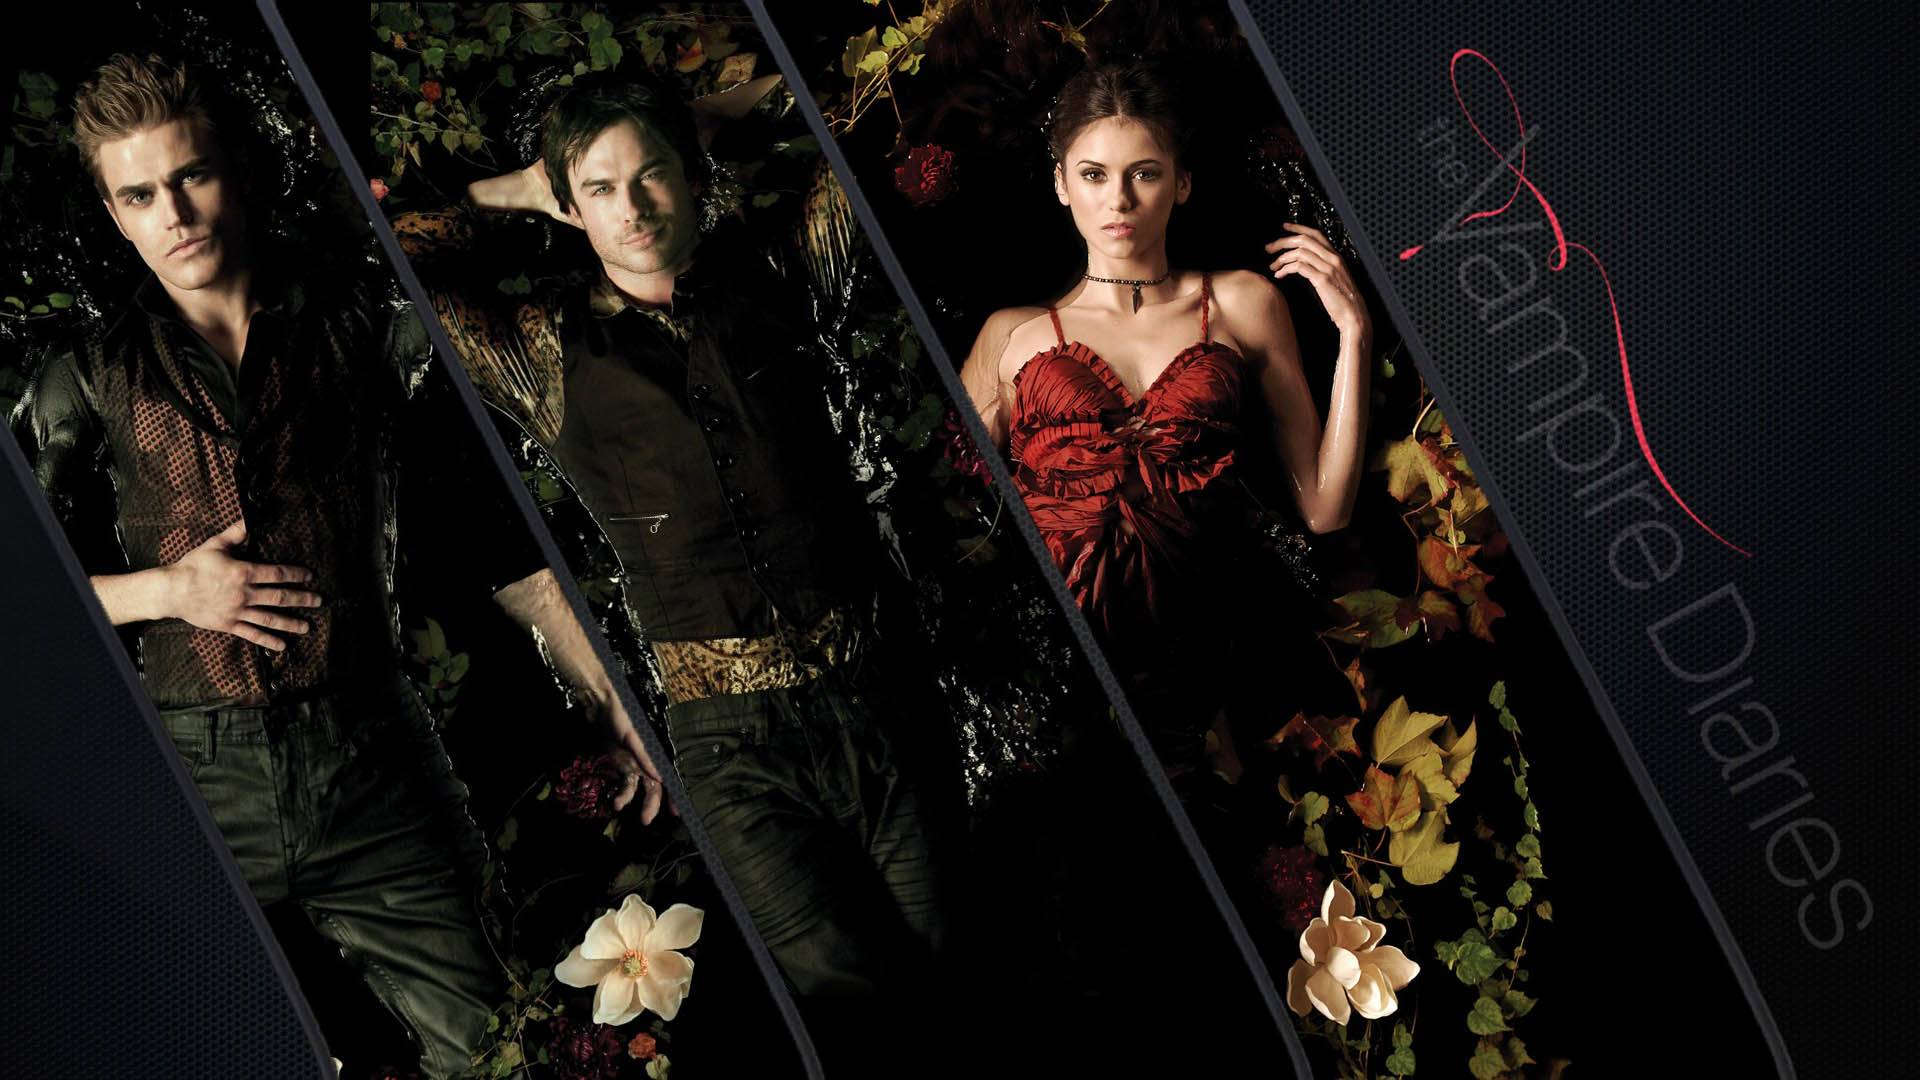 Wallpaper The Vampire Diaries: The Vampire Diaries Wallpaper HD